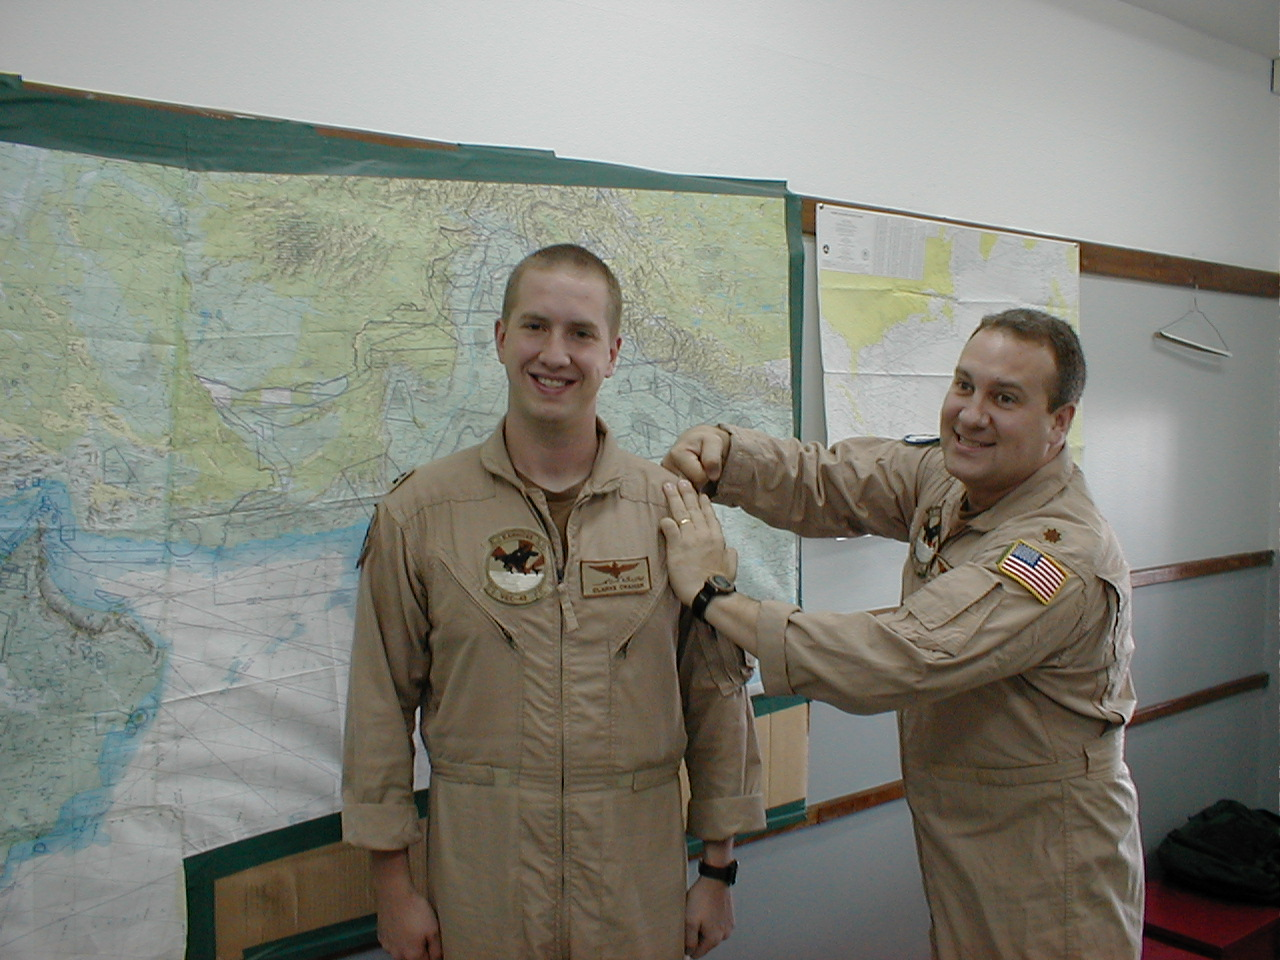 LT Clarke Cramer promotion June 2002